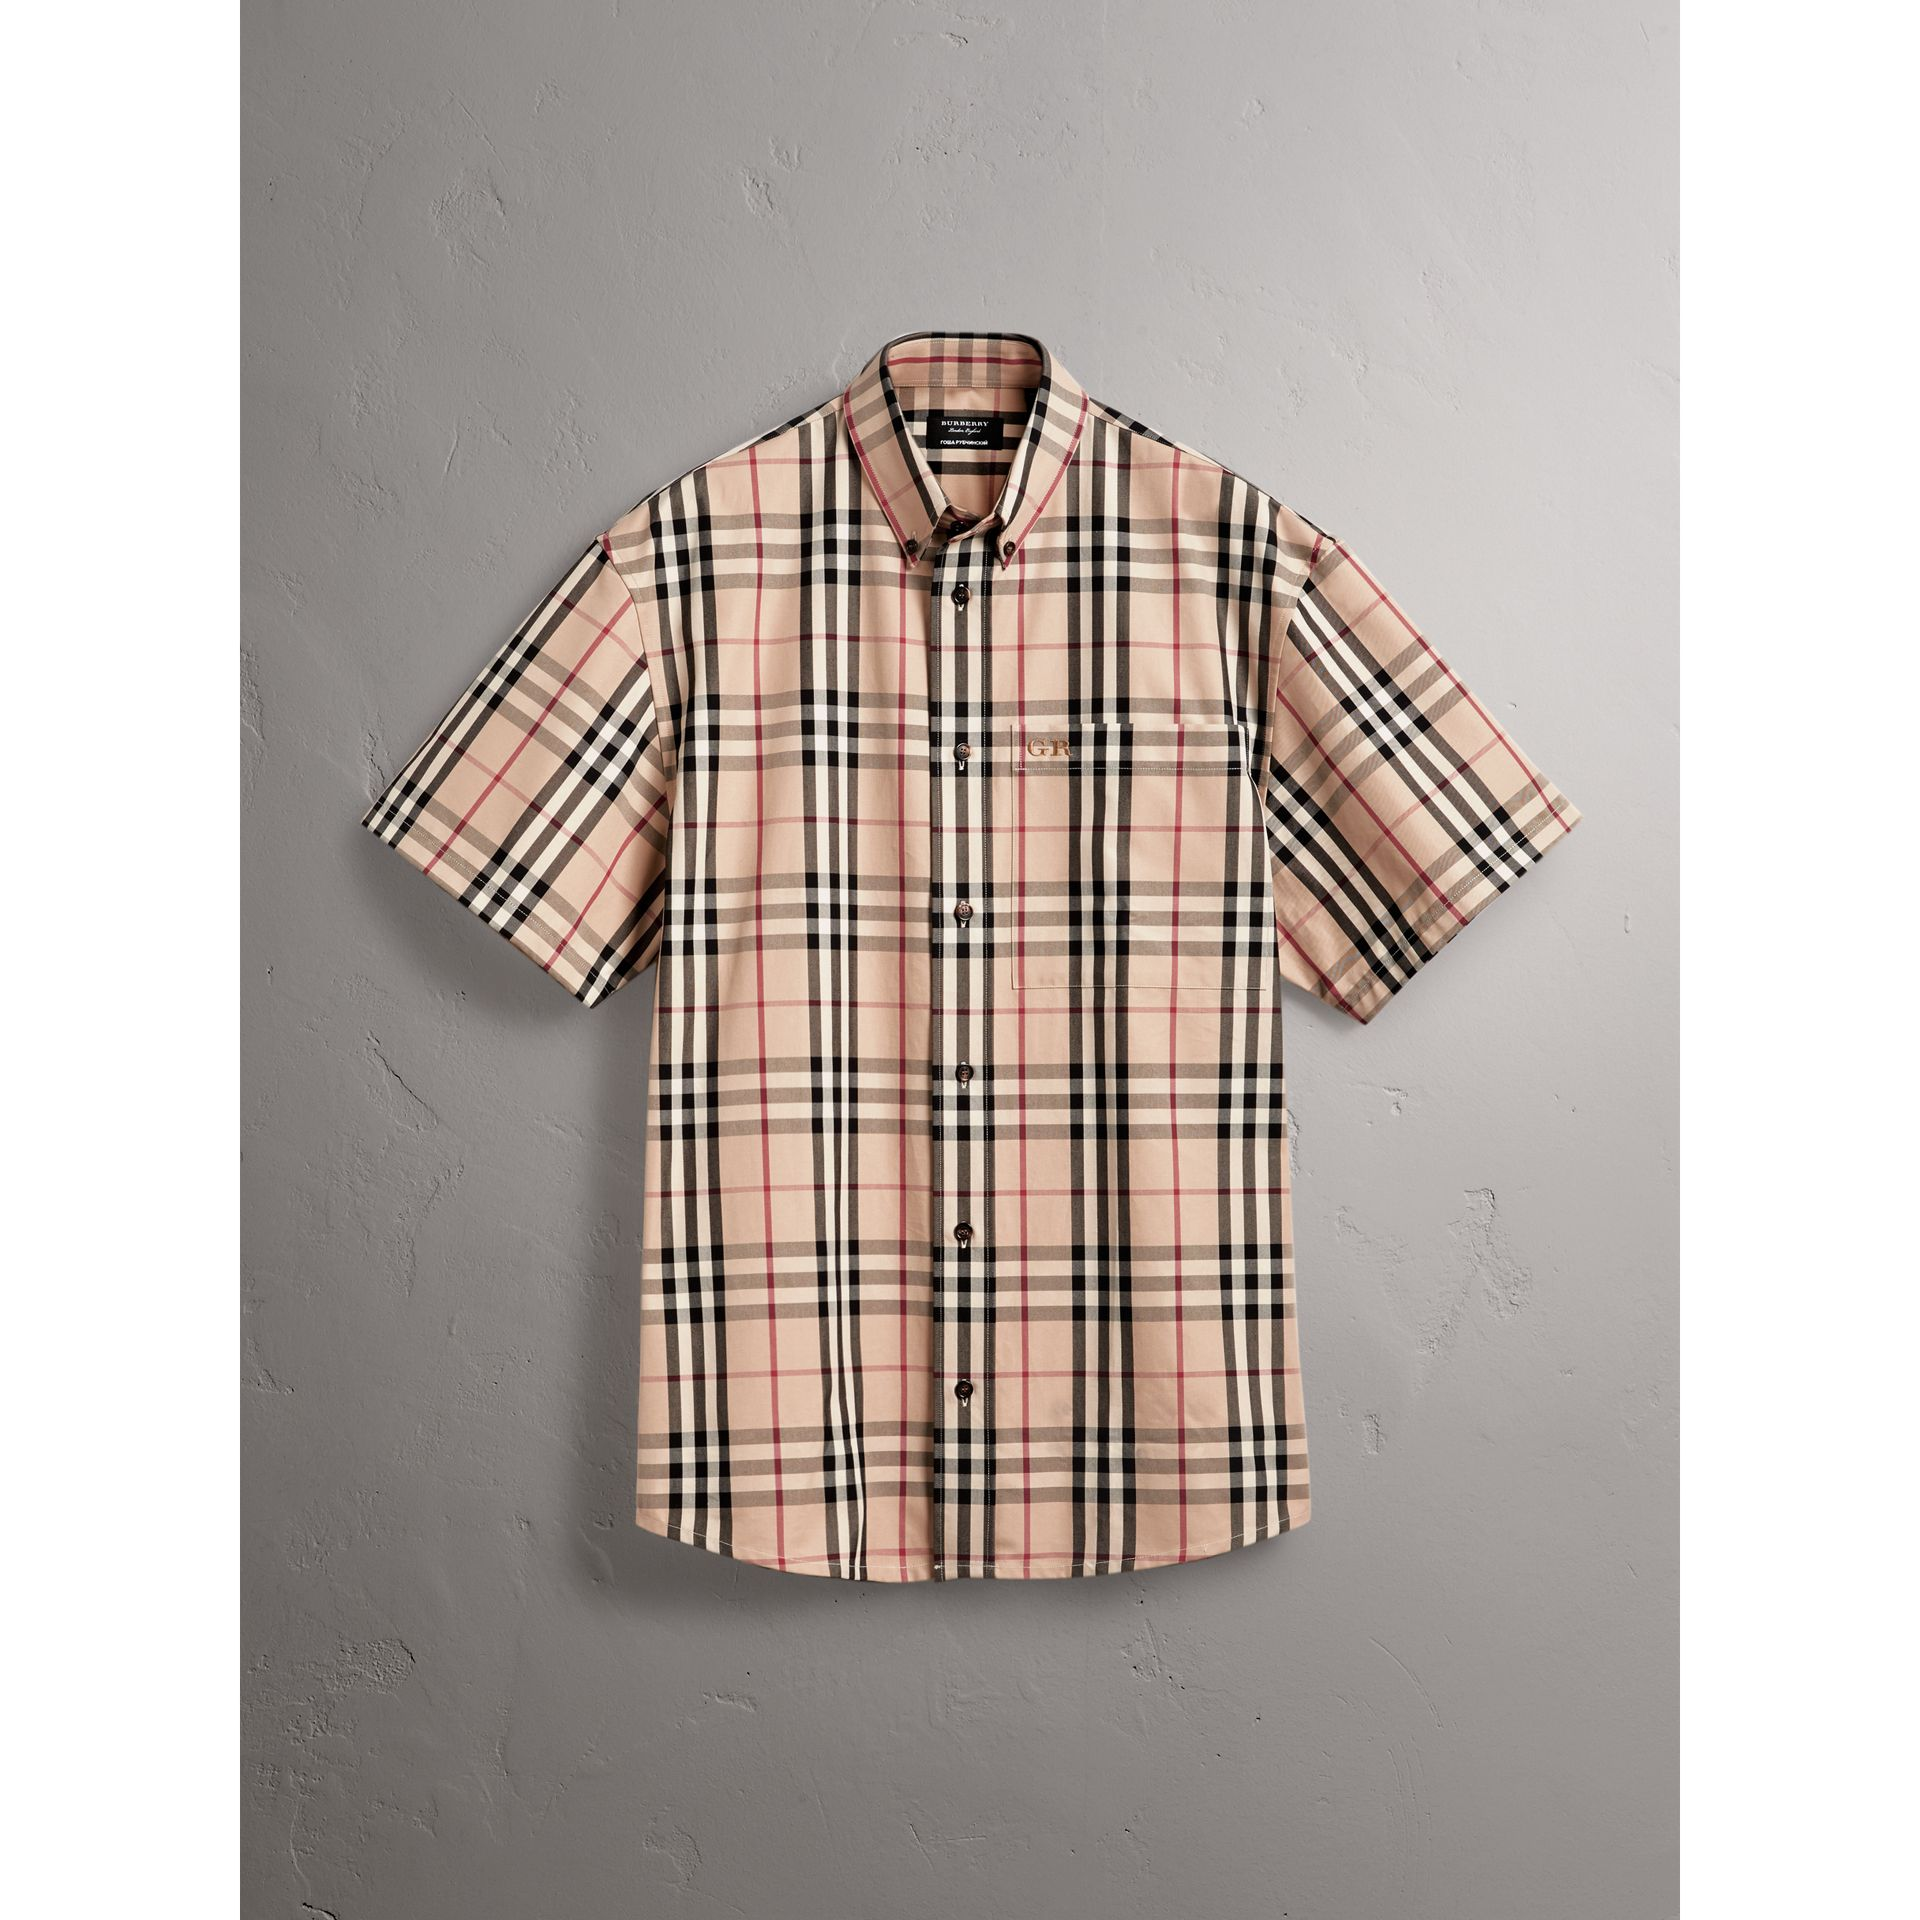 Gosha x Burberry Short-sleeve Check Shirt in Honey | Burberry Singapore - gallery image 4